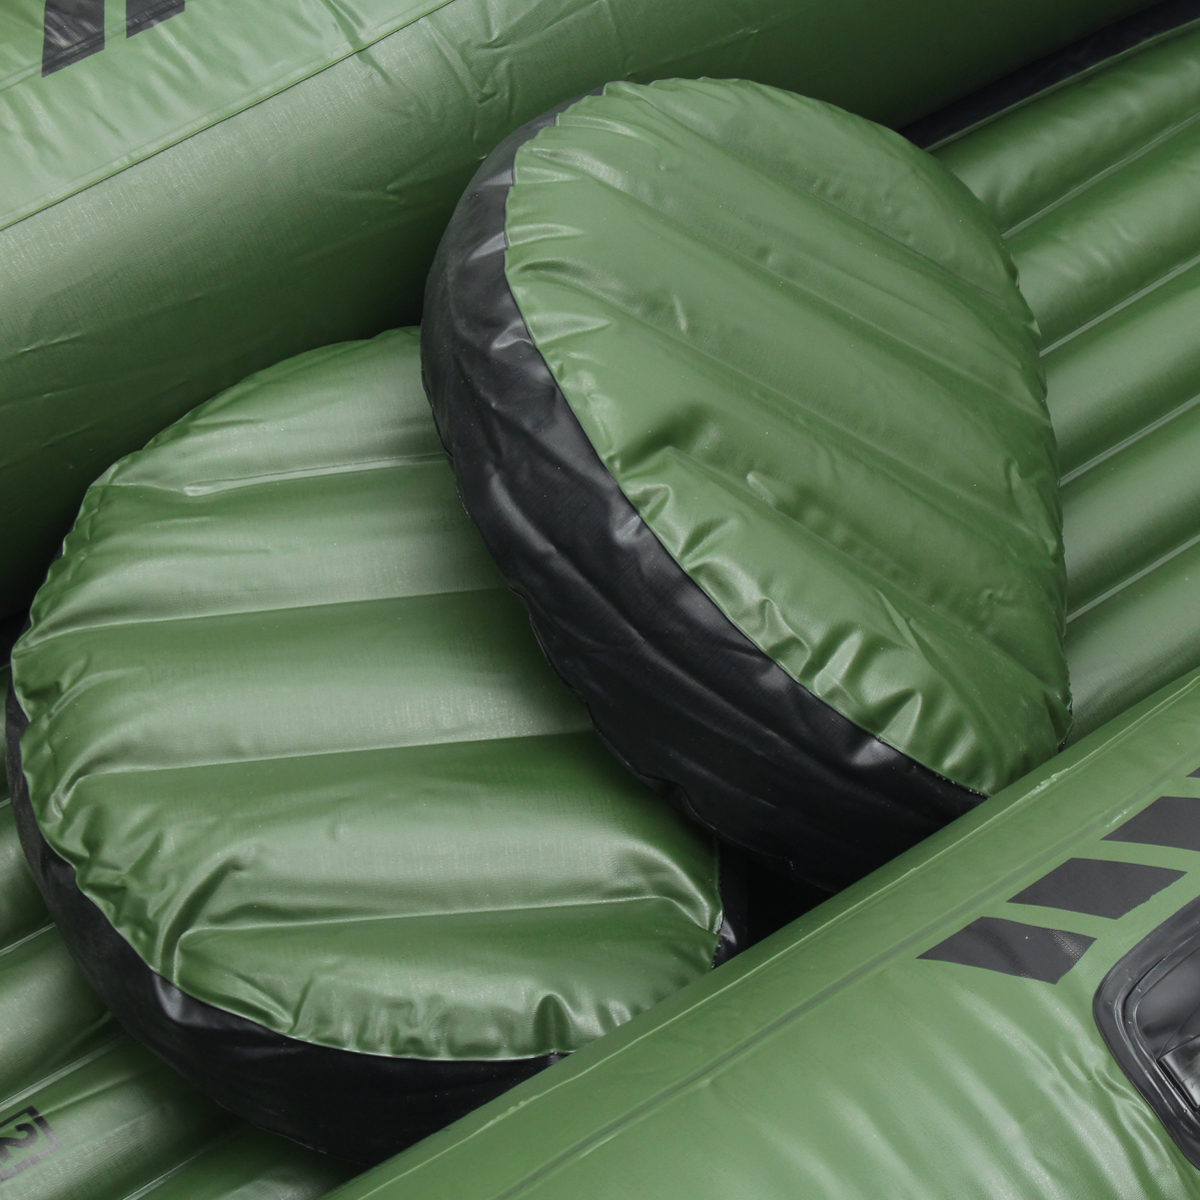 2 3 Persons PVC Inflatable Boat Rubber Dinghy For Kayaking Canoeing Rafting Fishing